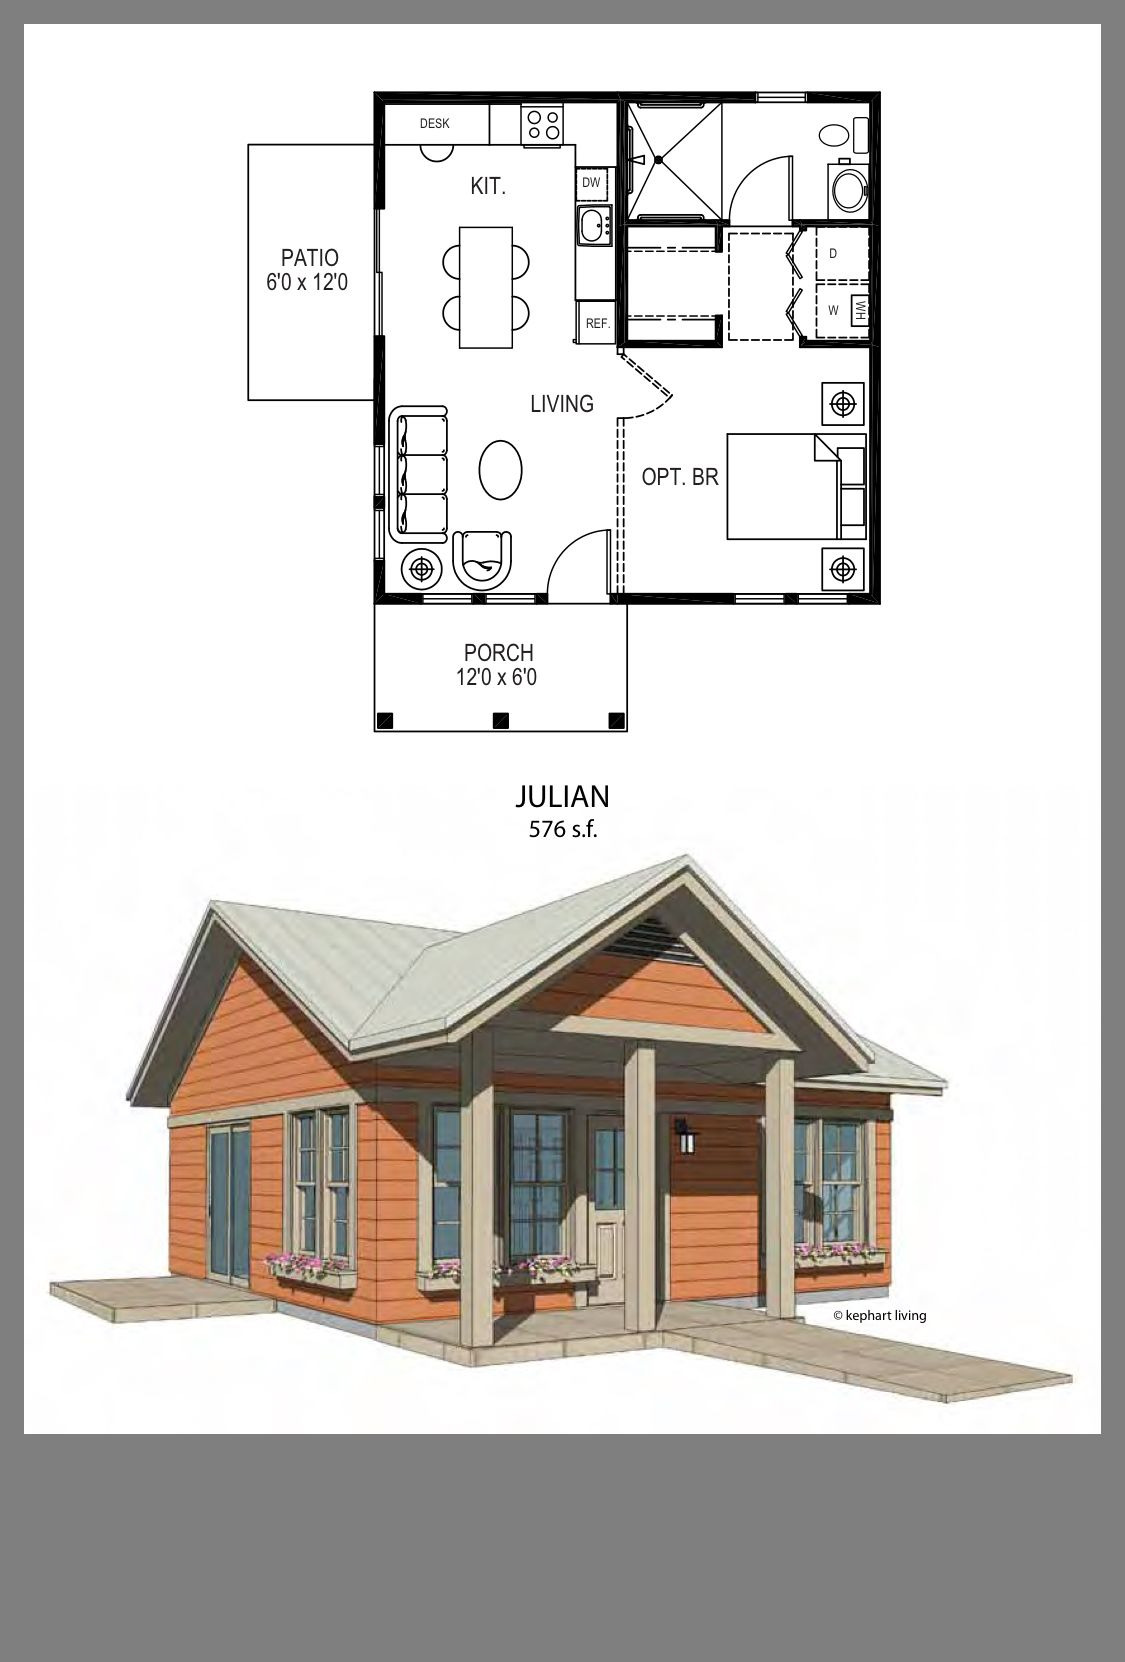 Floor Plans for Small Houses Lovely Julian Small but Efficient